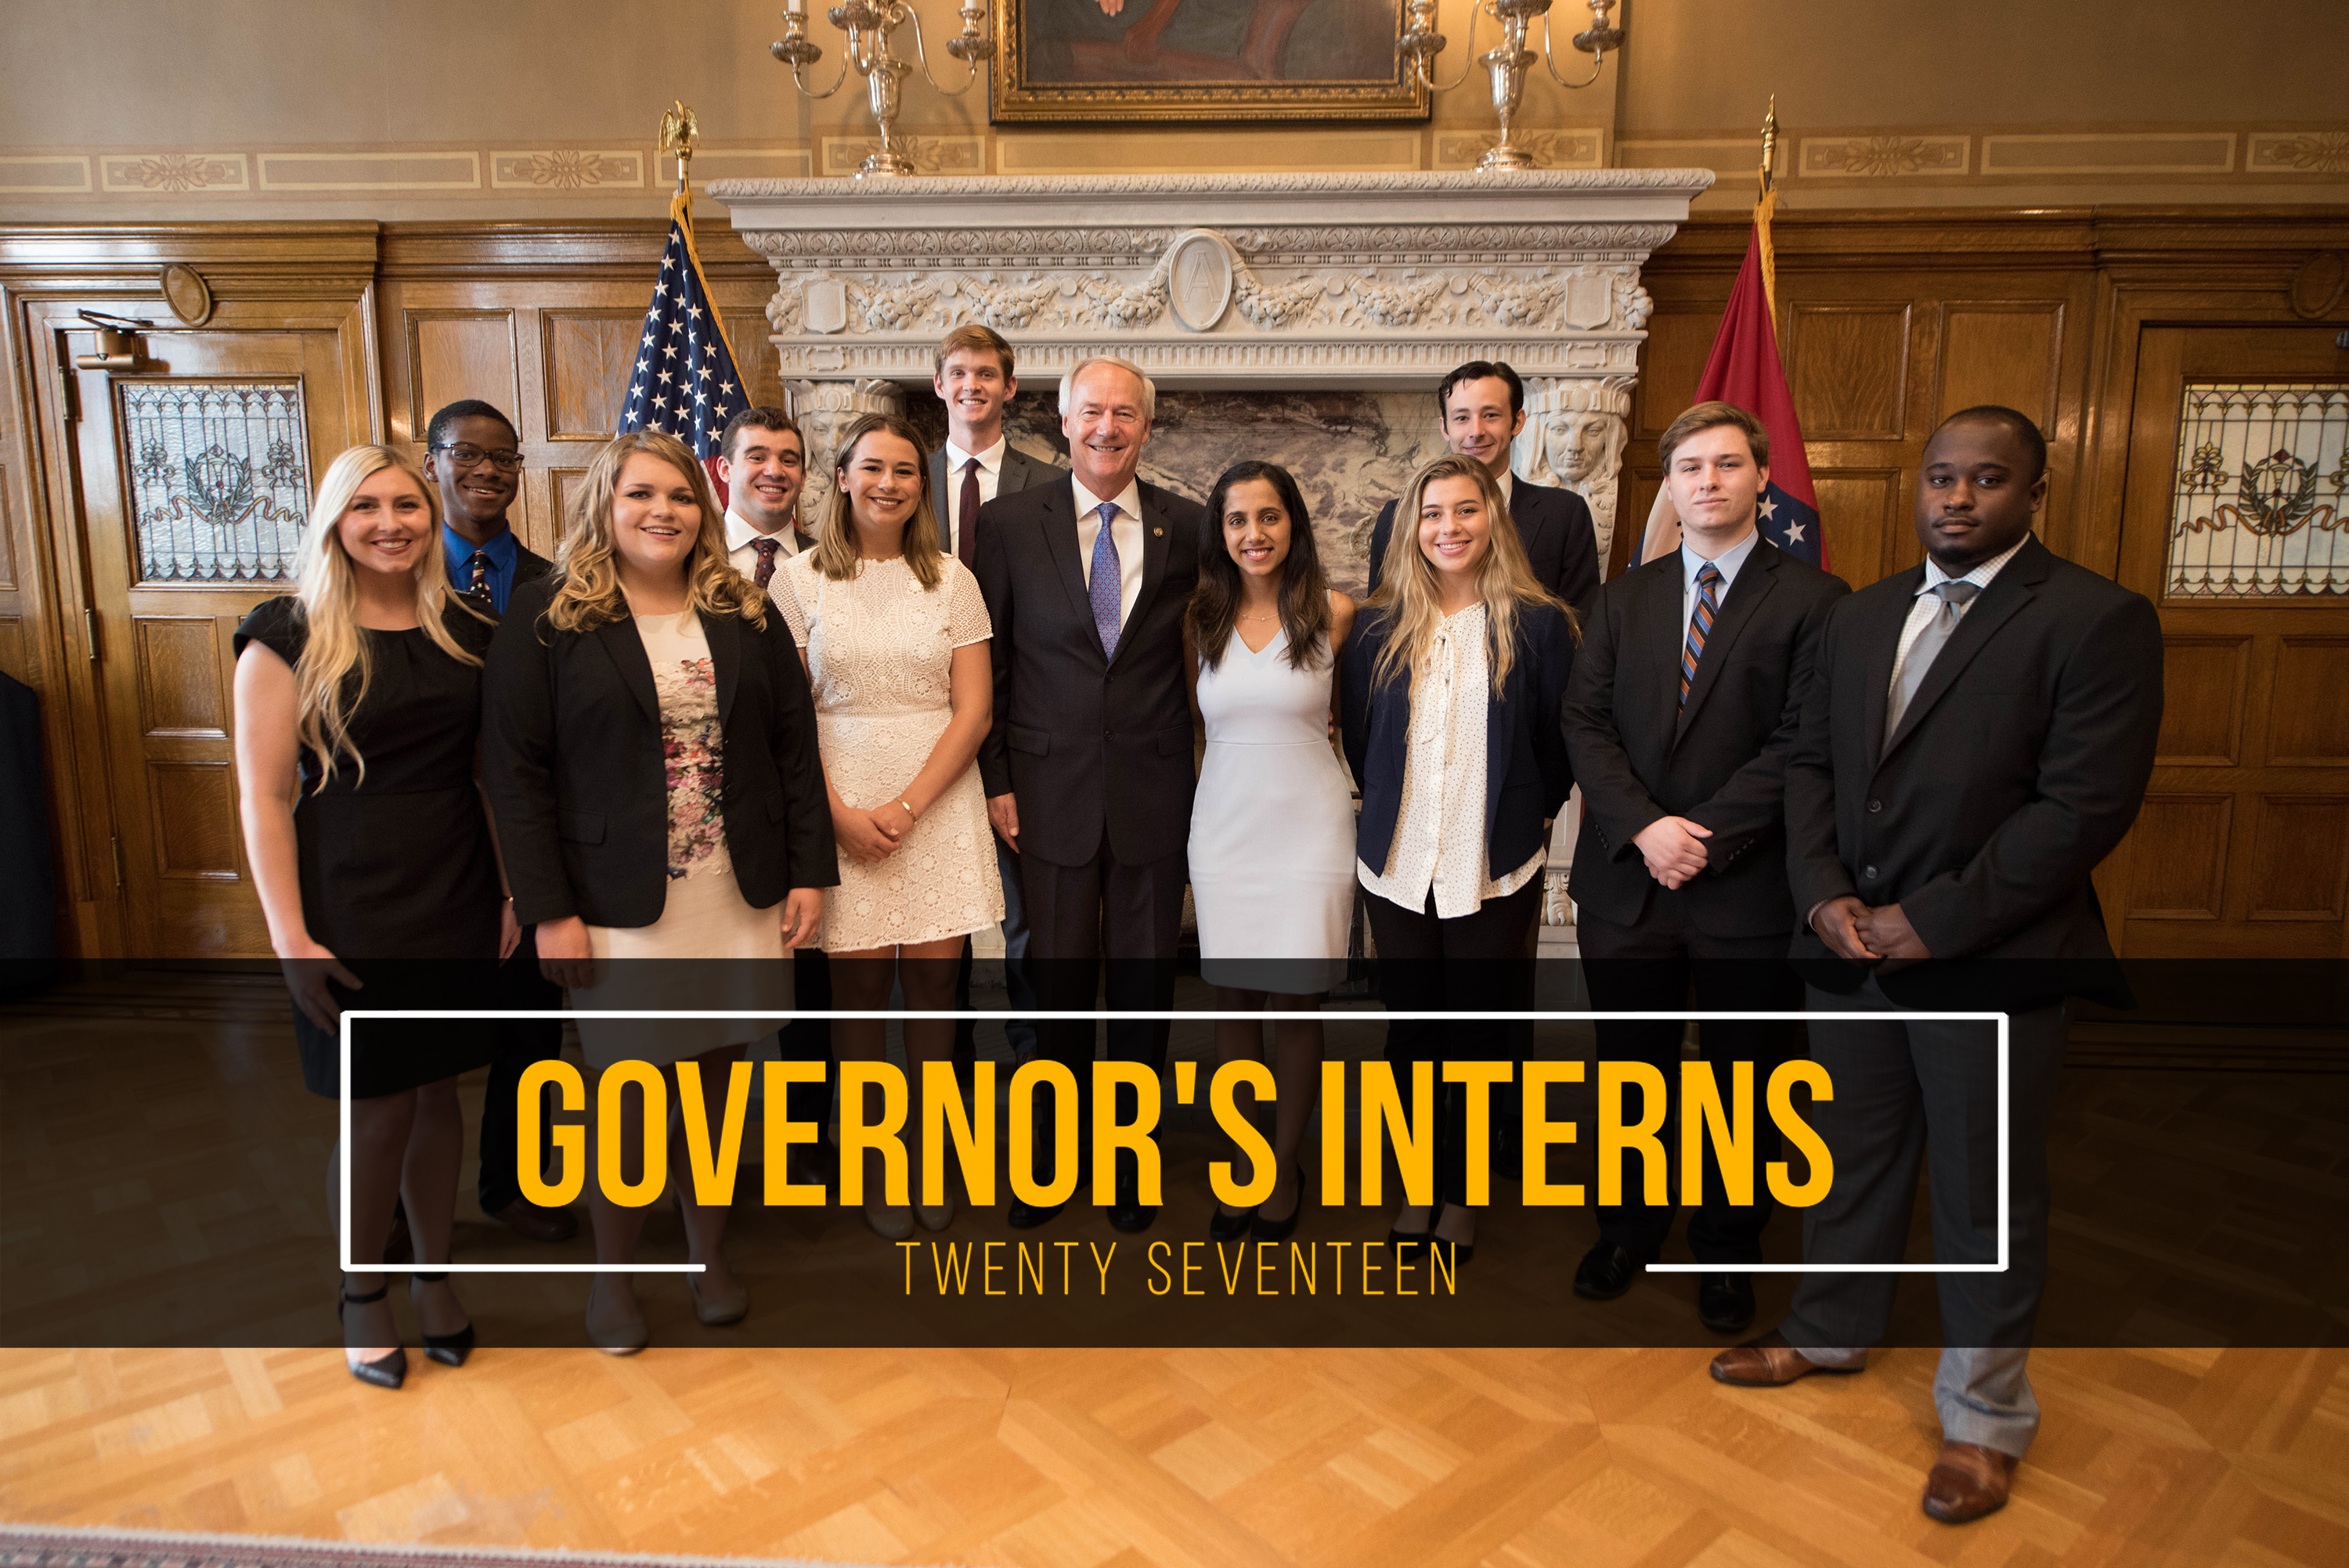 Governor's Interns 2017